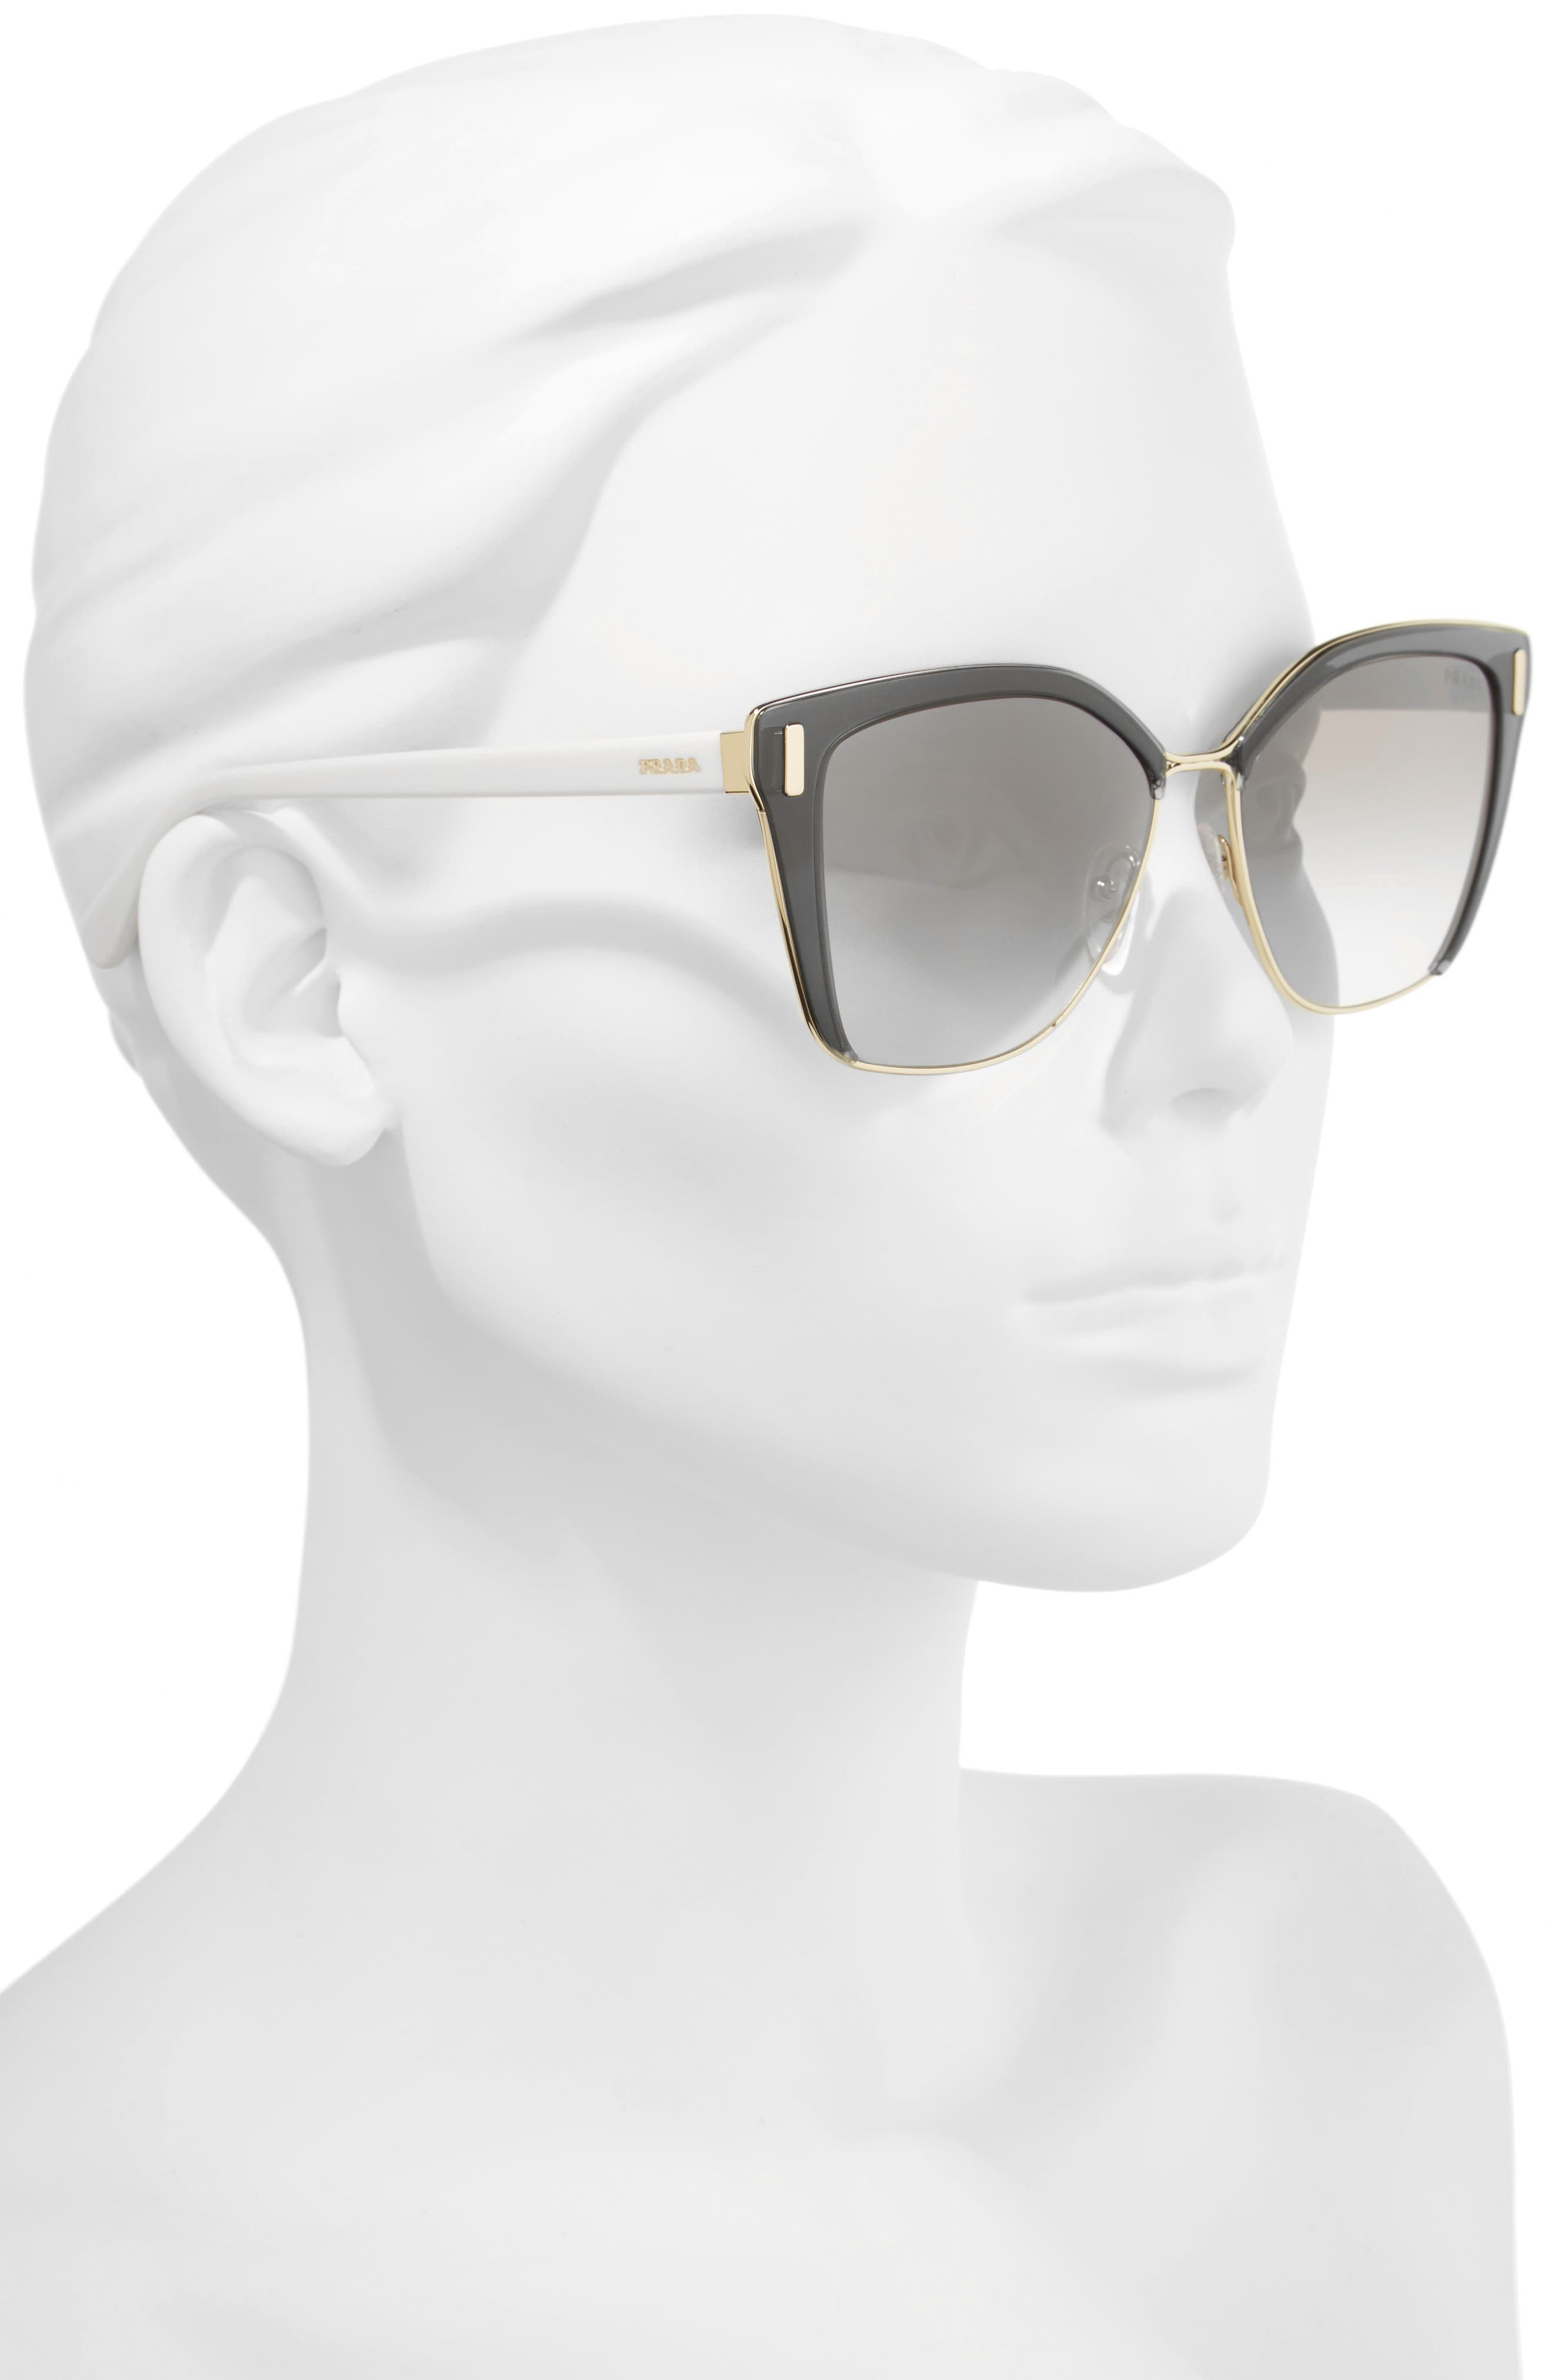 54mm Gradient Geometric Sunglasses,                             Alternate thumbnail 2, color,                             Grey/ Gold Gradient Mirror